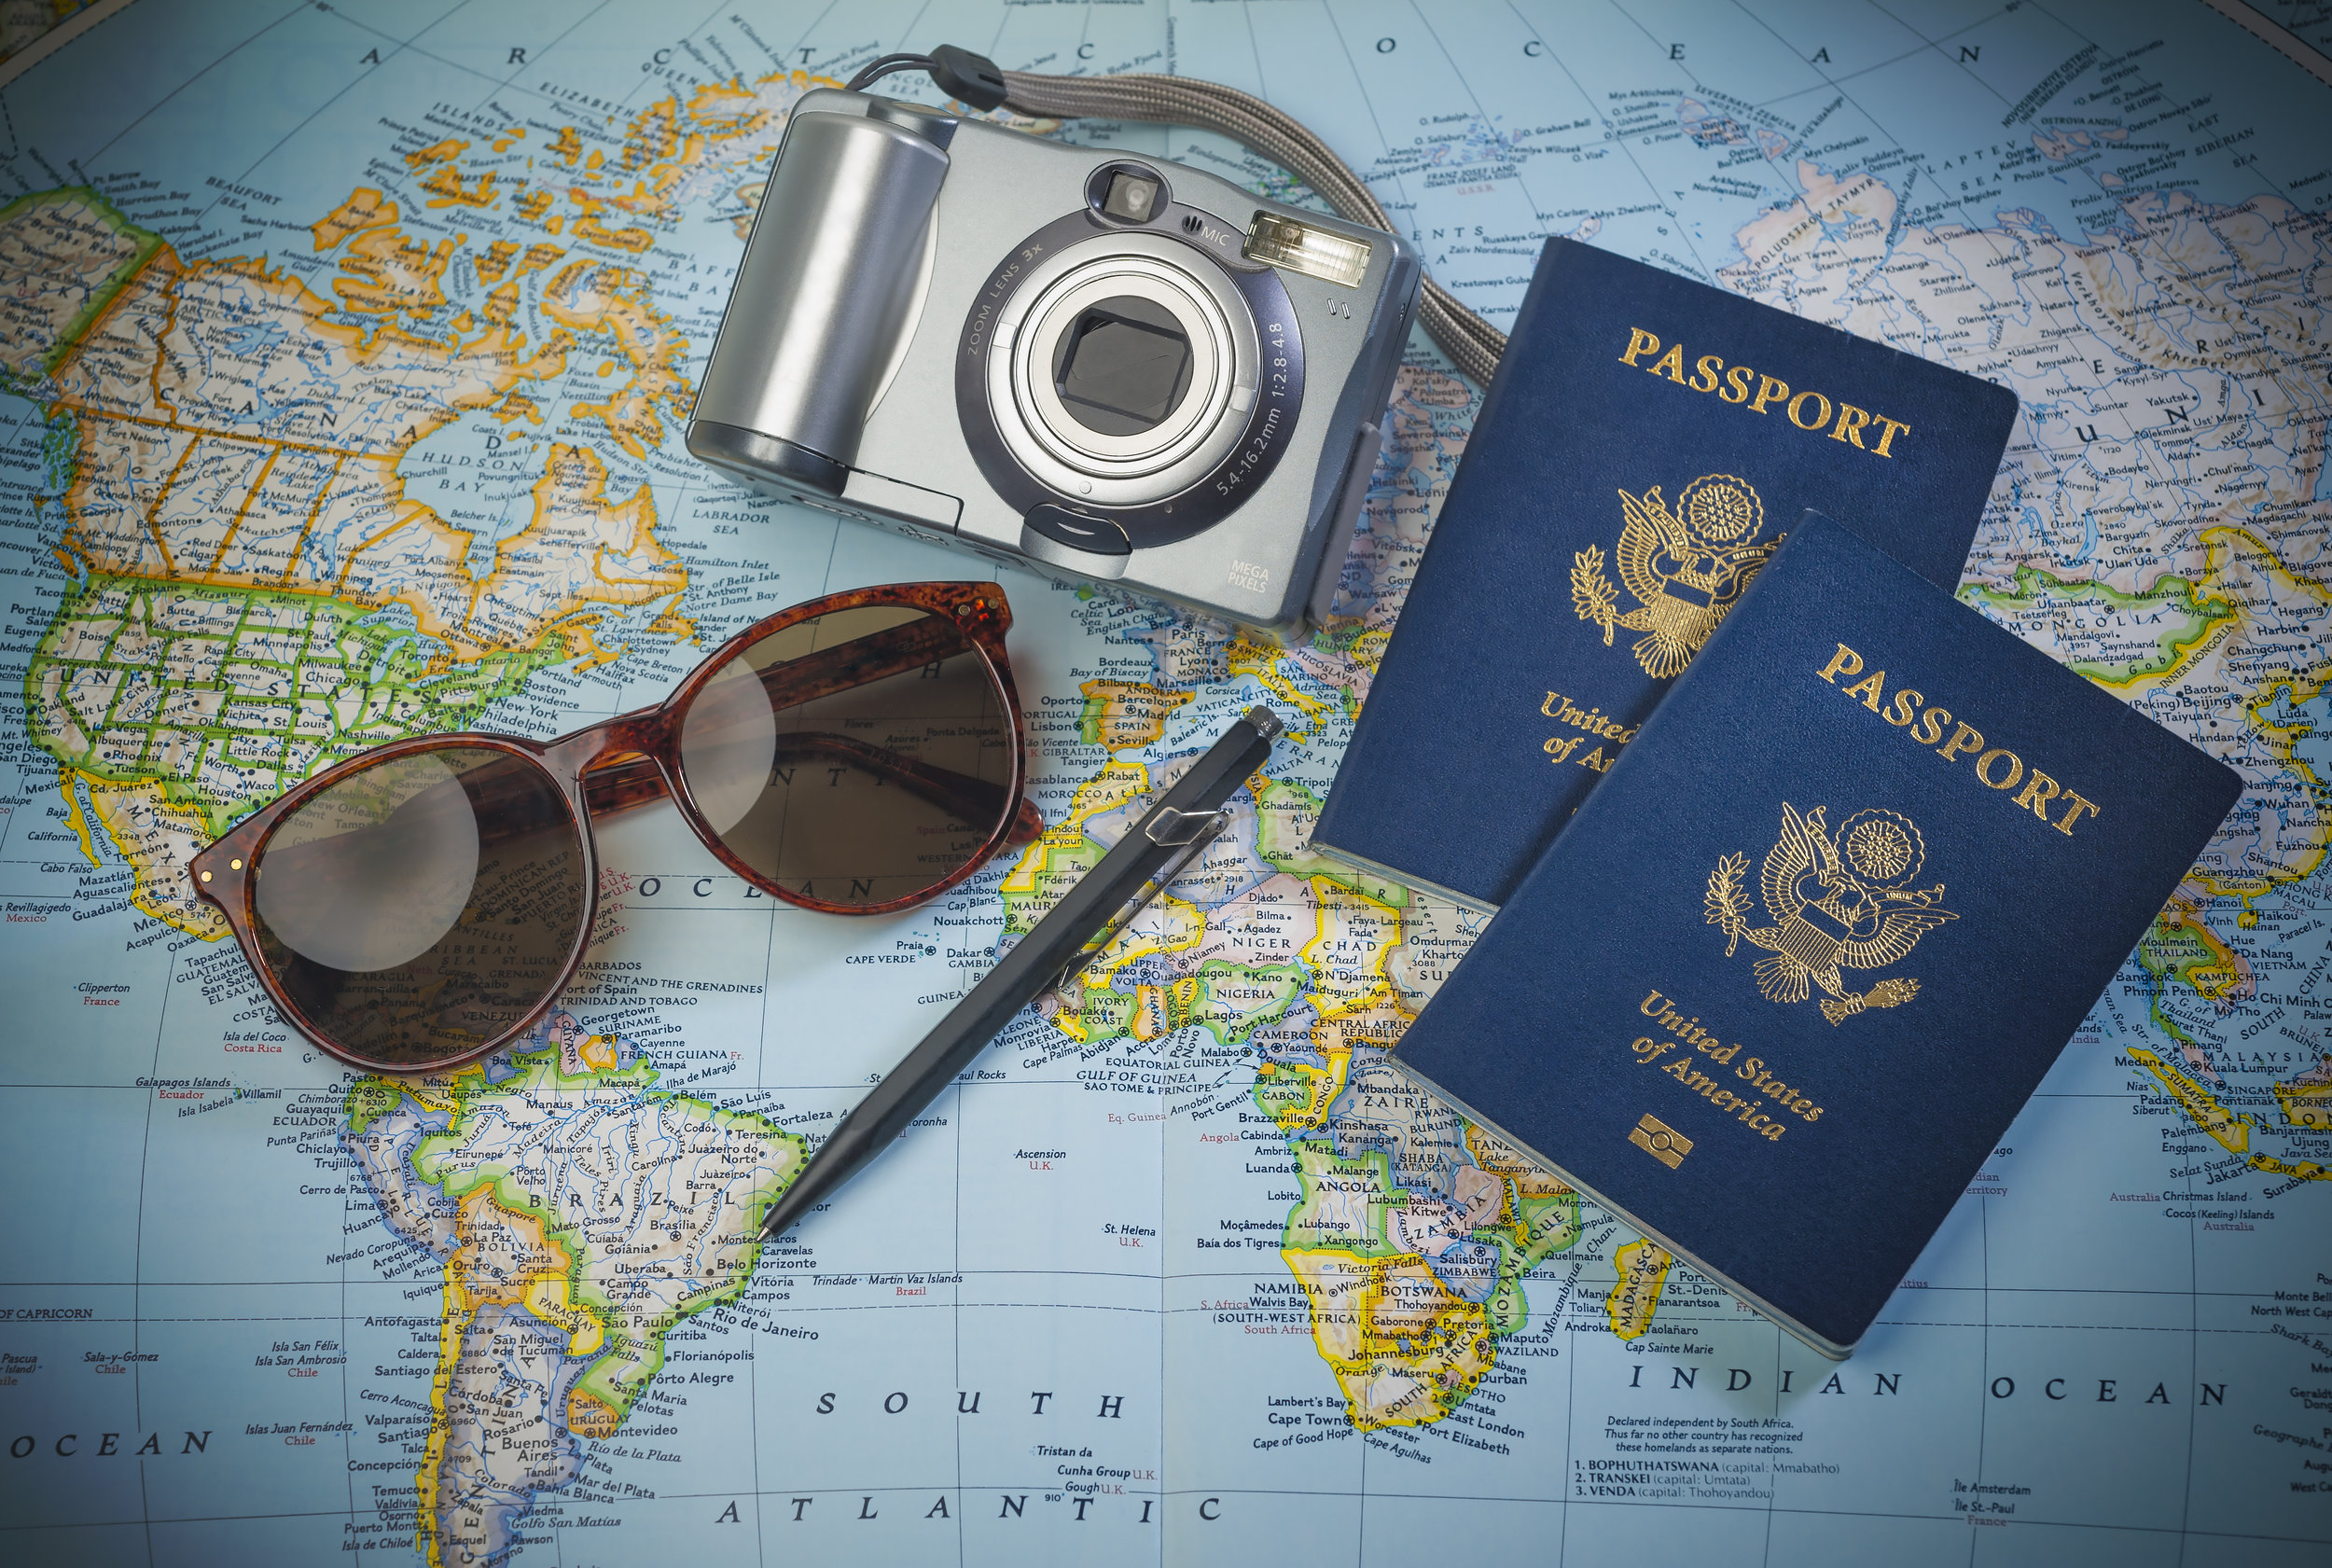 travel health clinic - Our Travel Health Clinic provides preventive health services to patients traveling internationally. We work closely with you to create a comprehensive travel health plan and assessment.